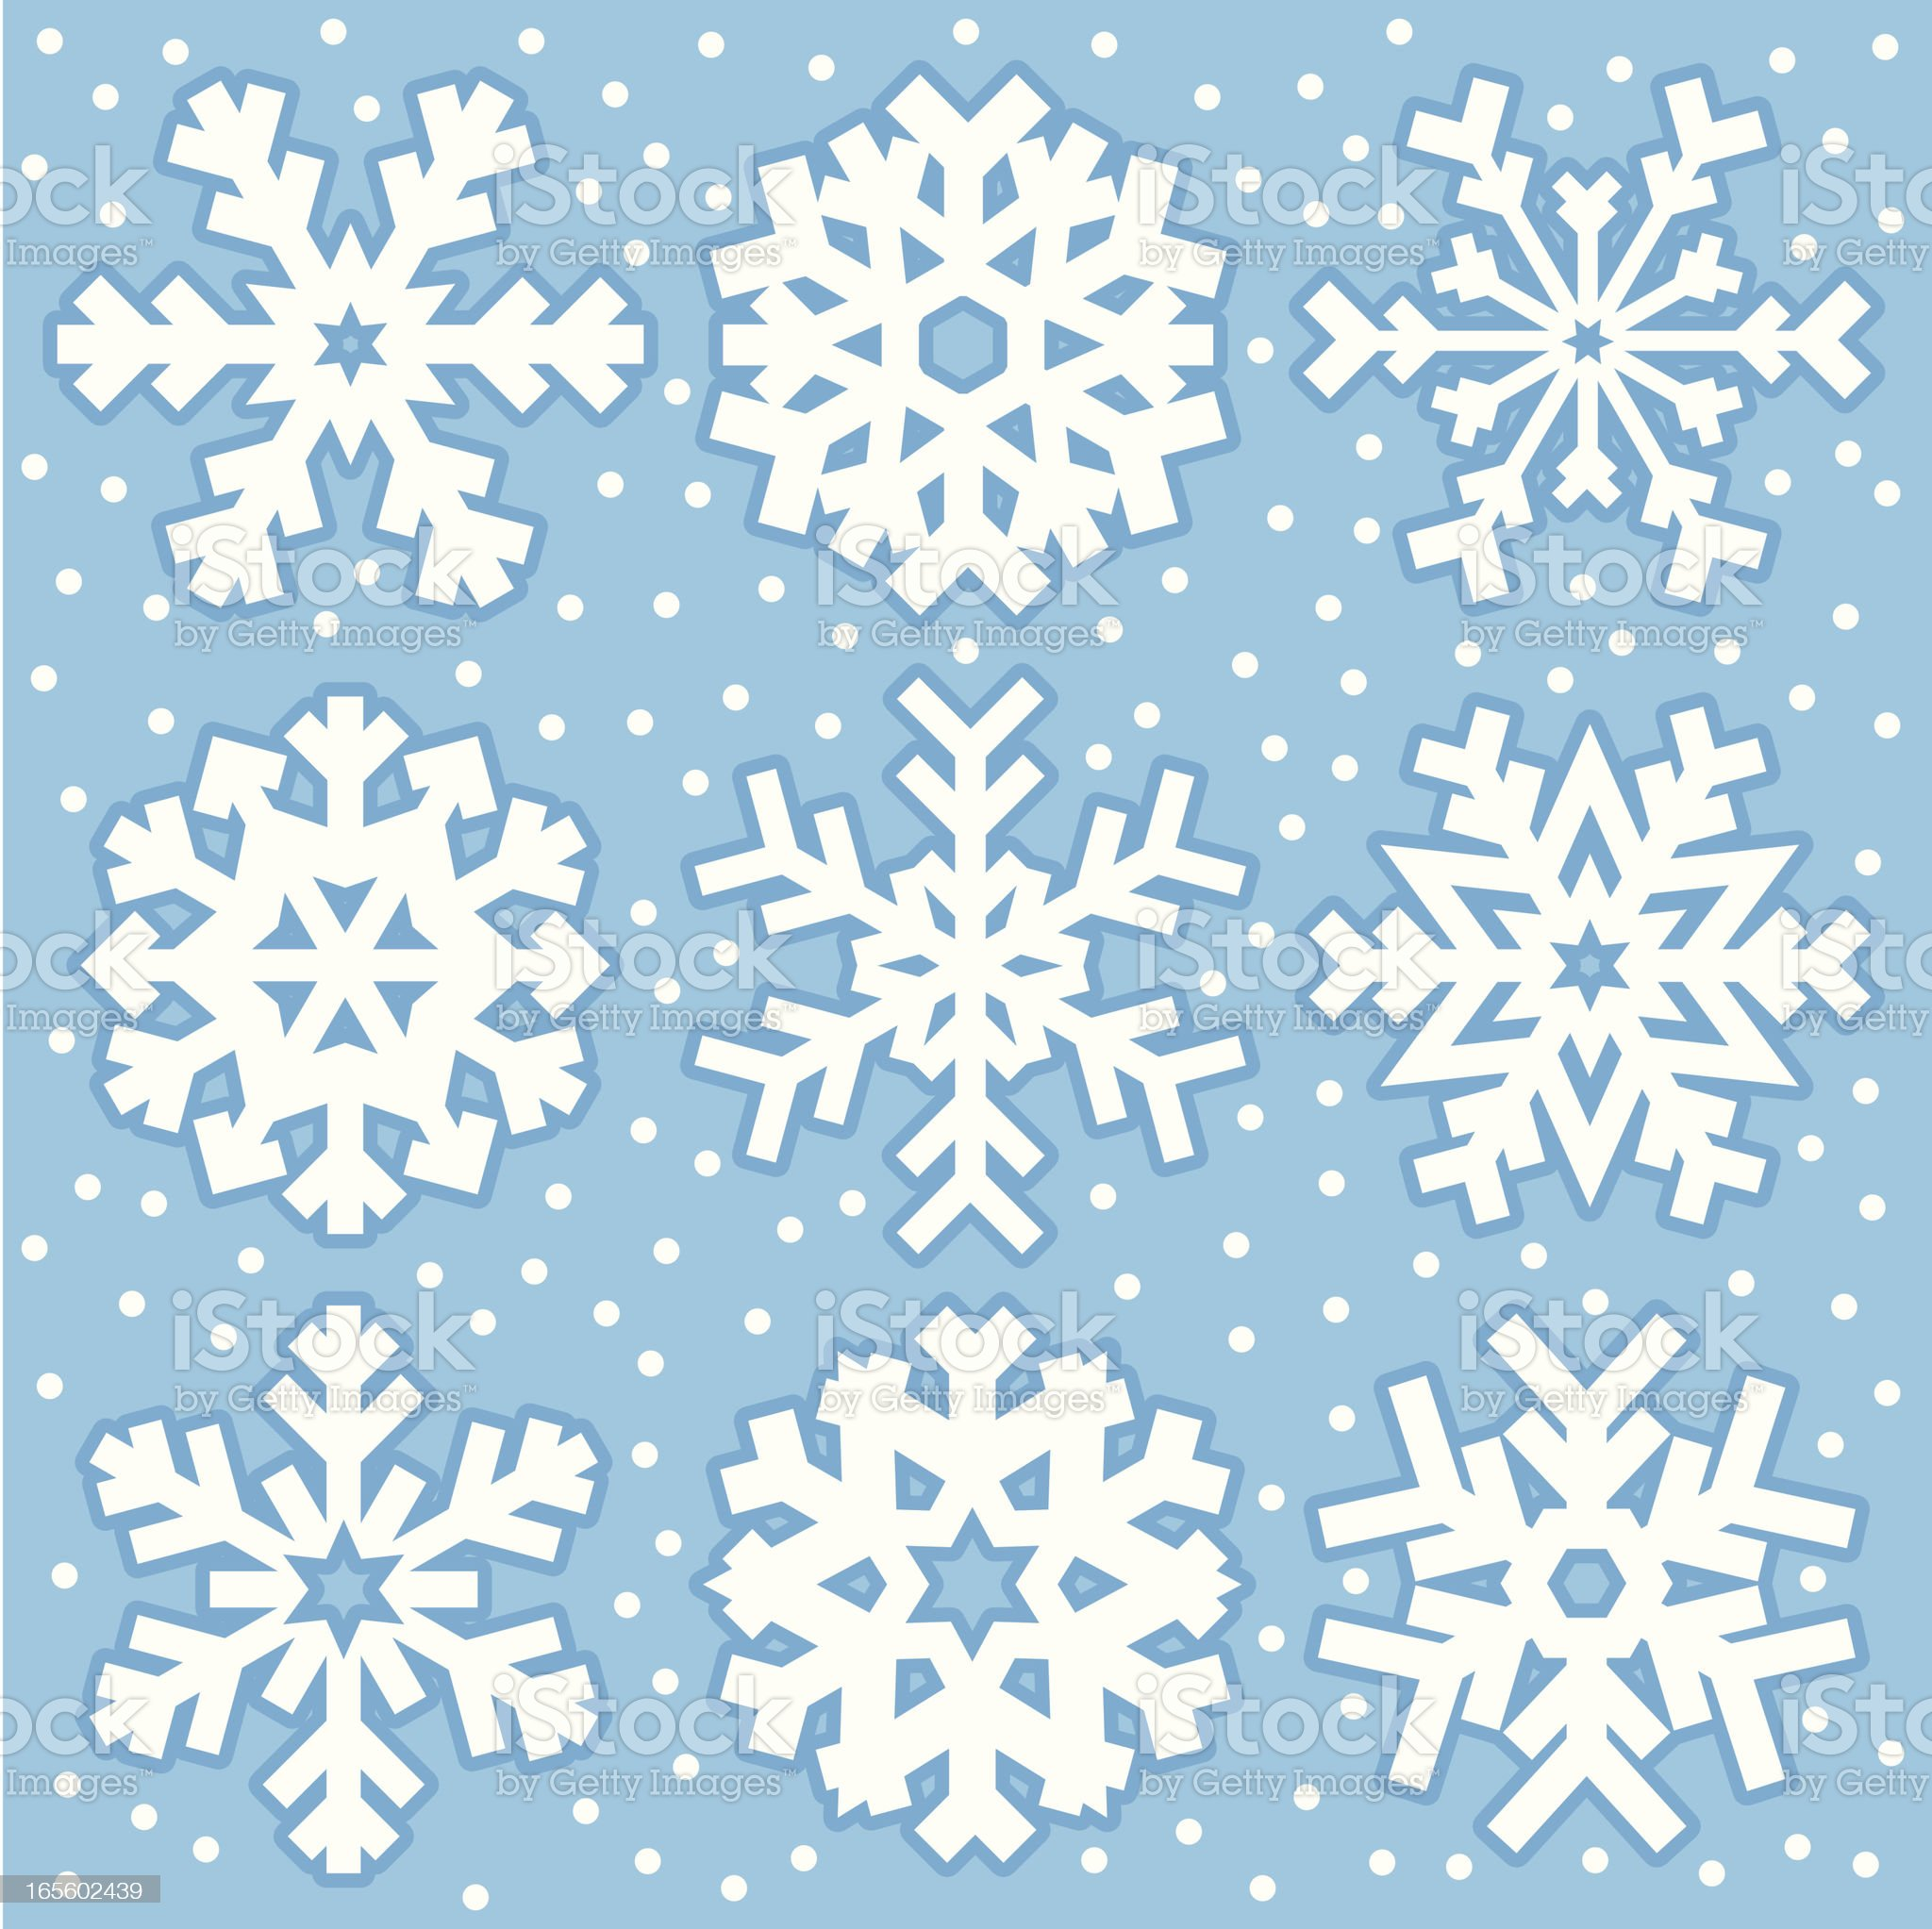 Nine snowflakes royalty-free stock vector art